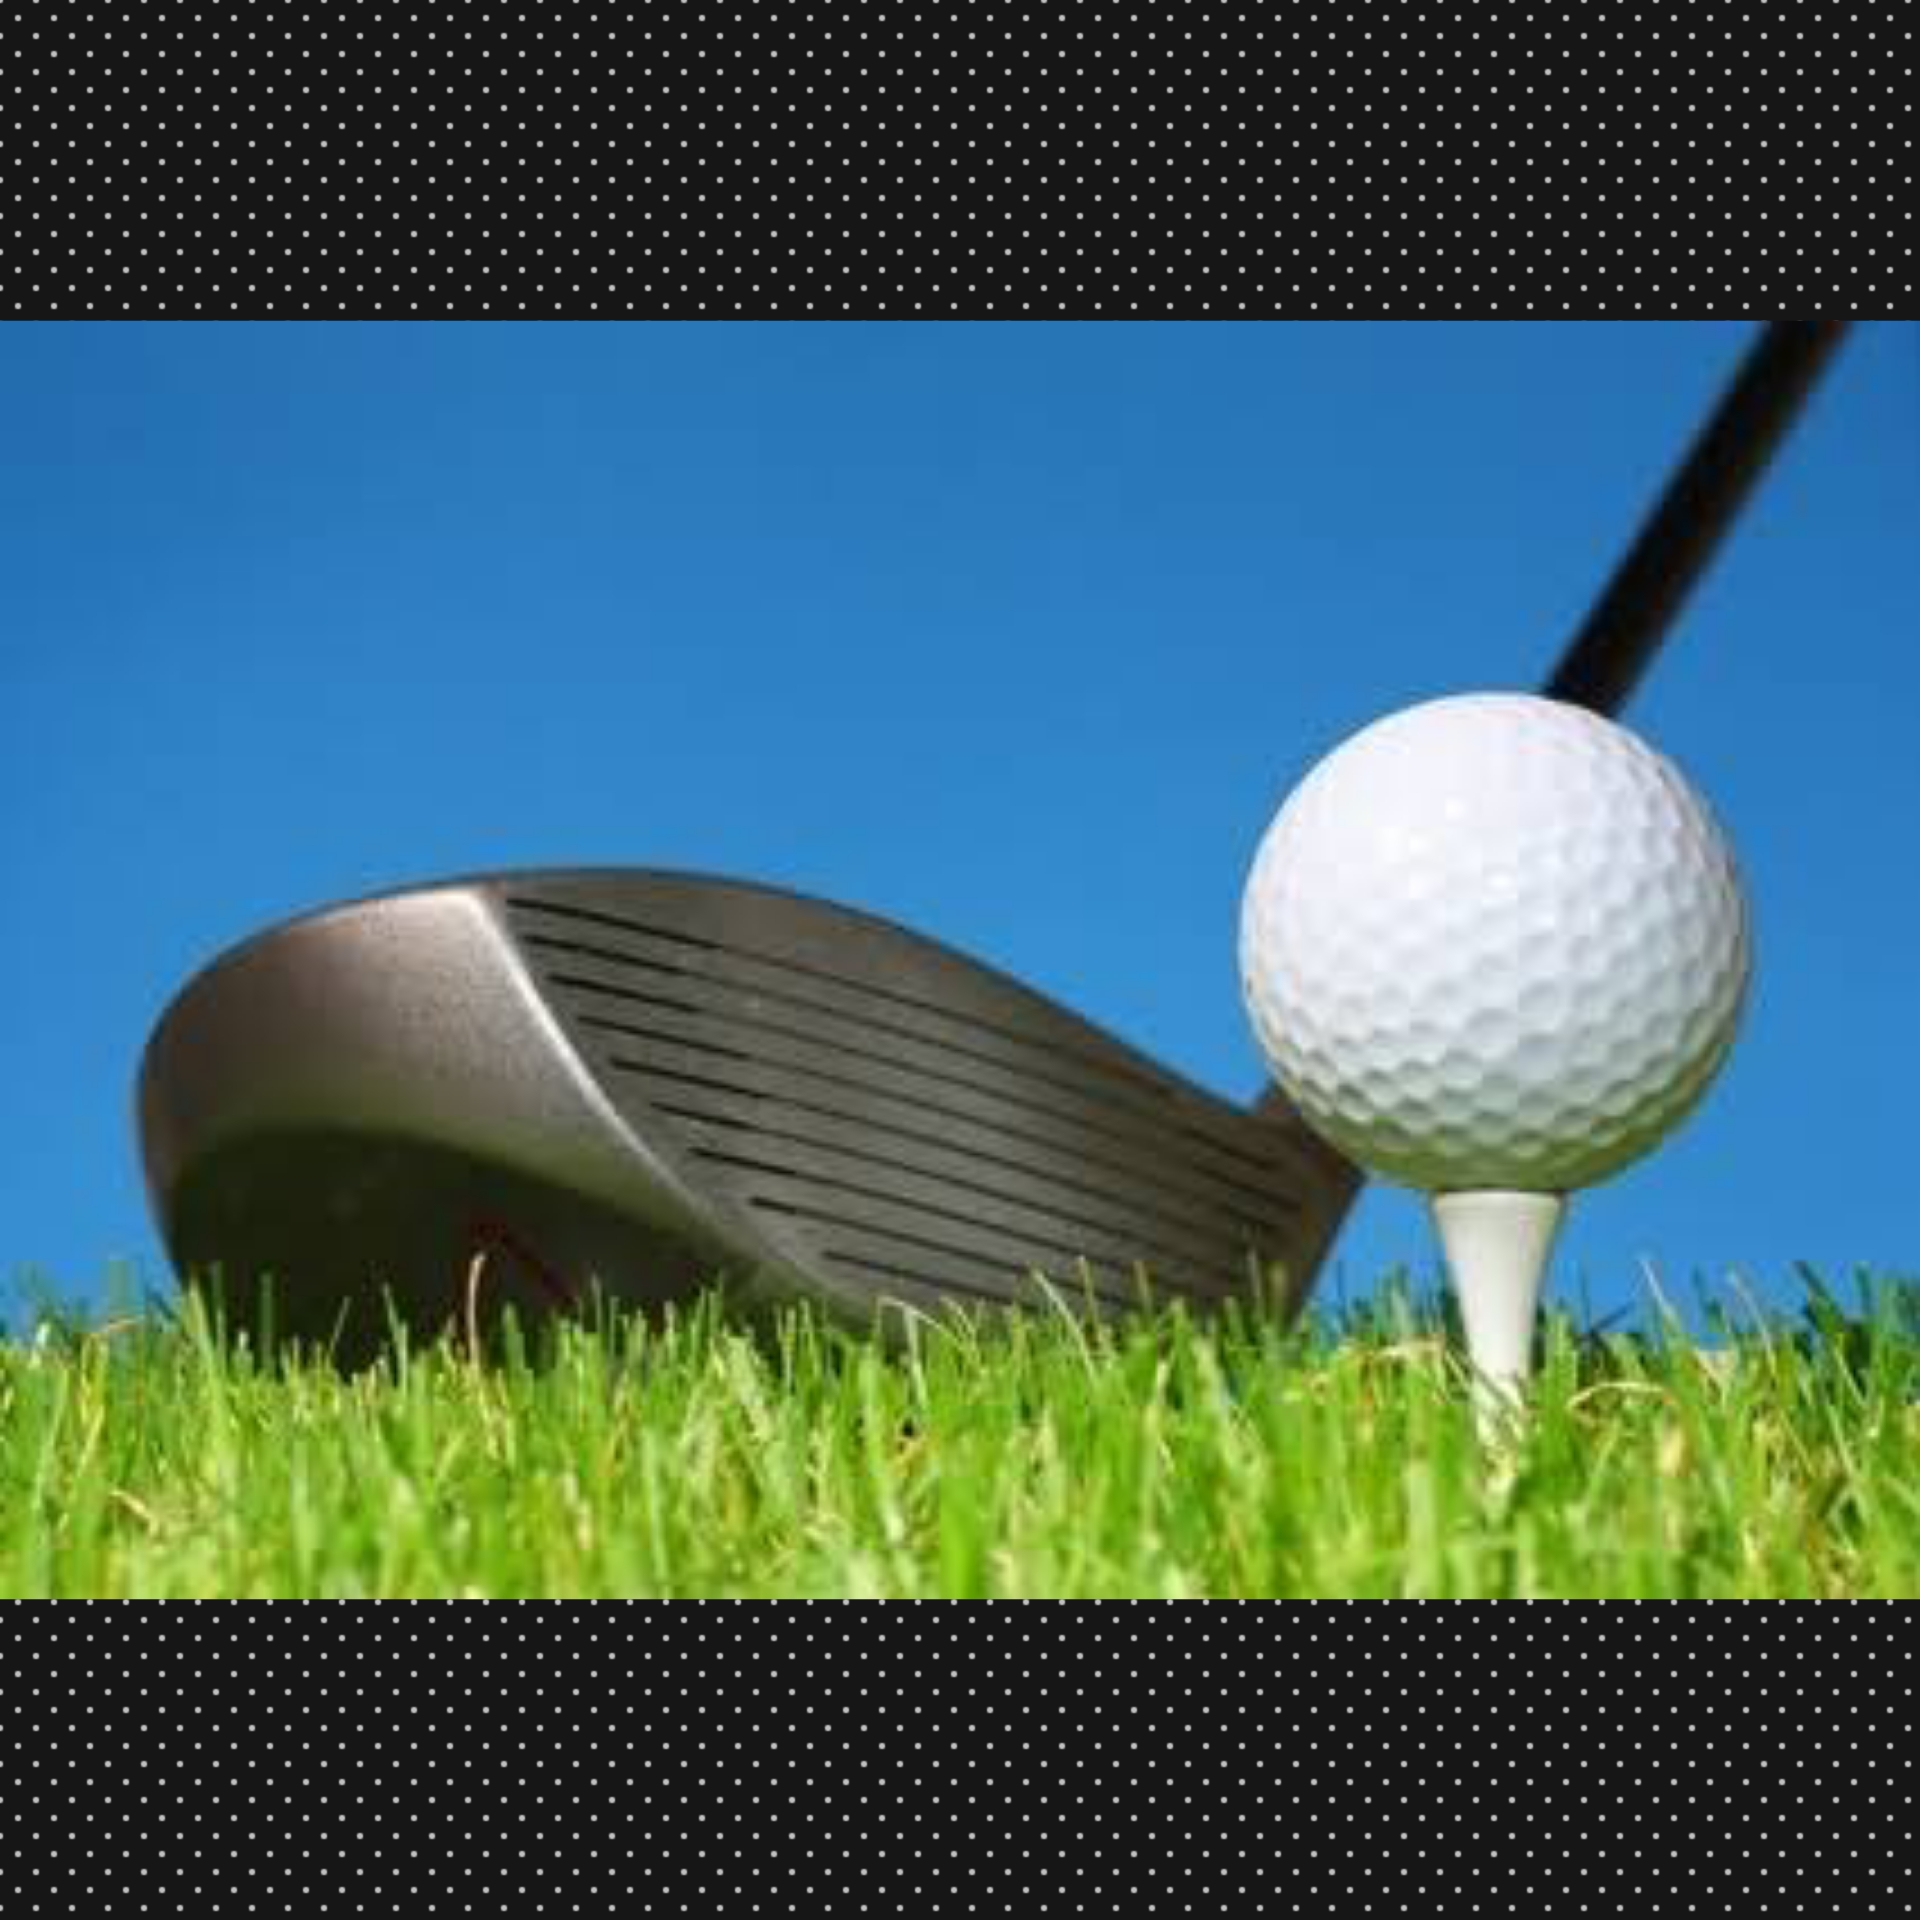 Golf: A Glossed Over Sport In Nigeria